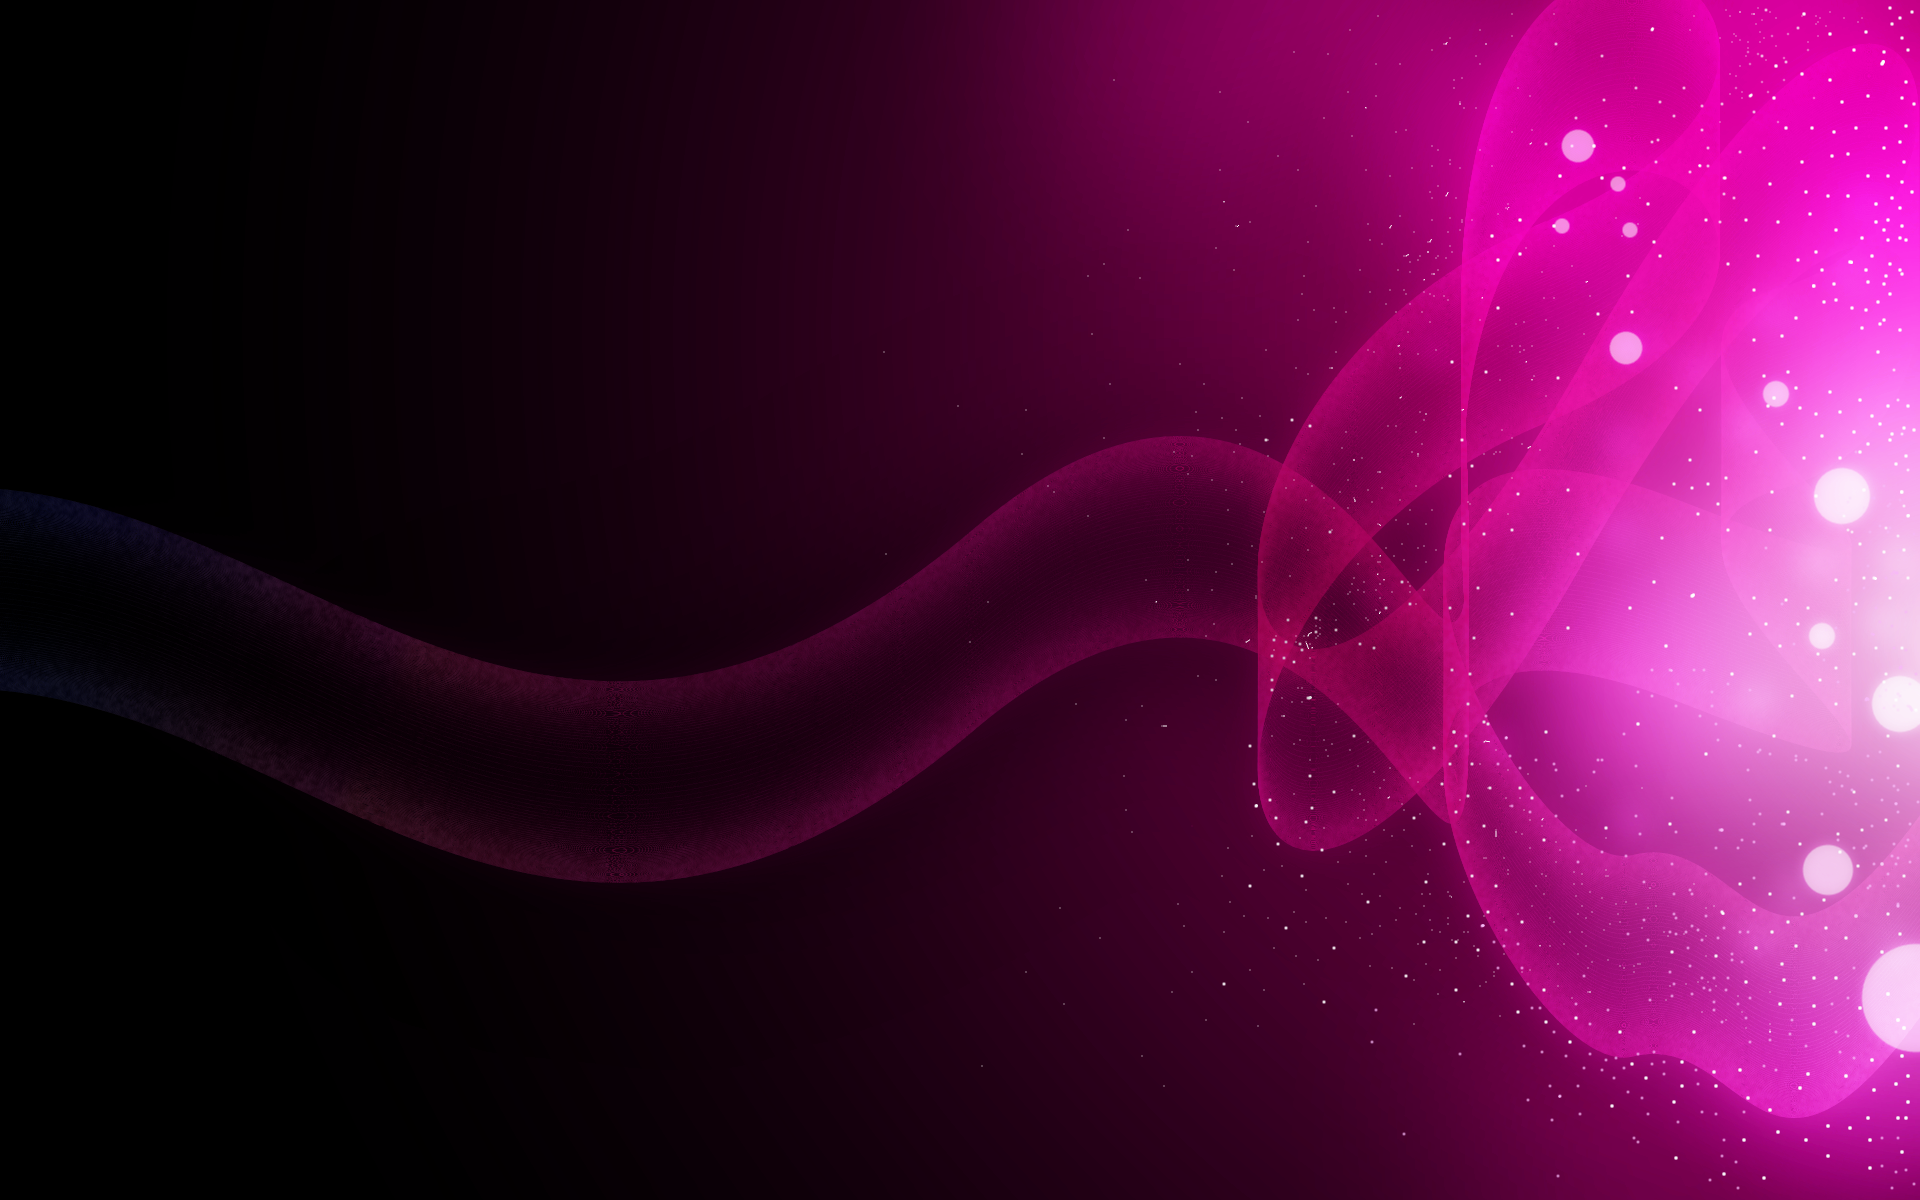 Pink Abstract Wallpaper 1920x1200